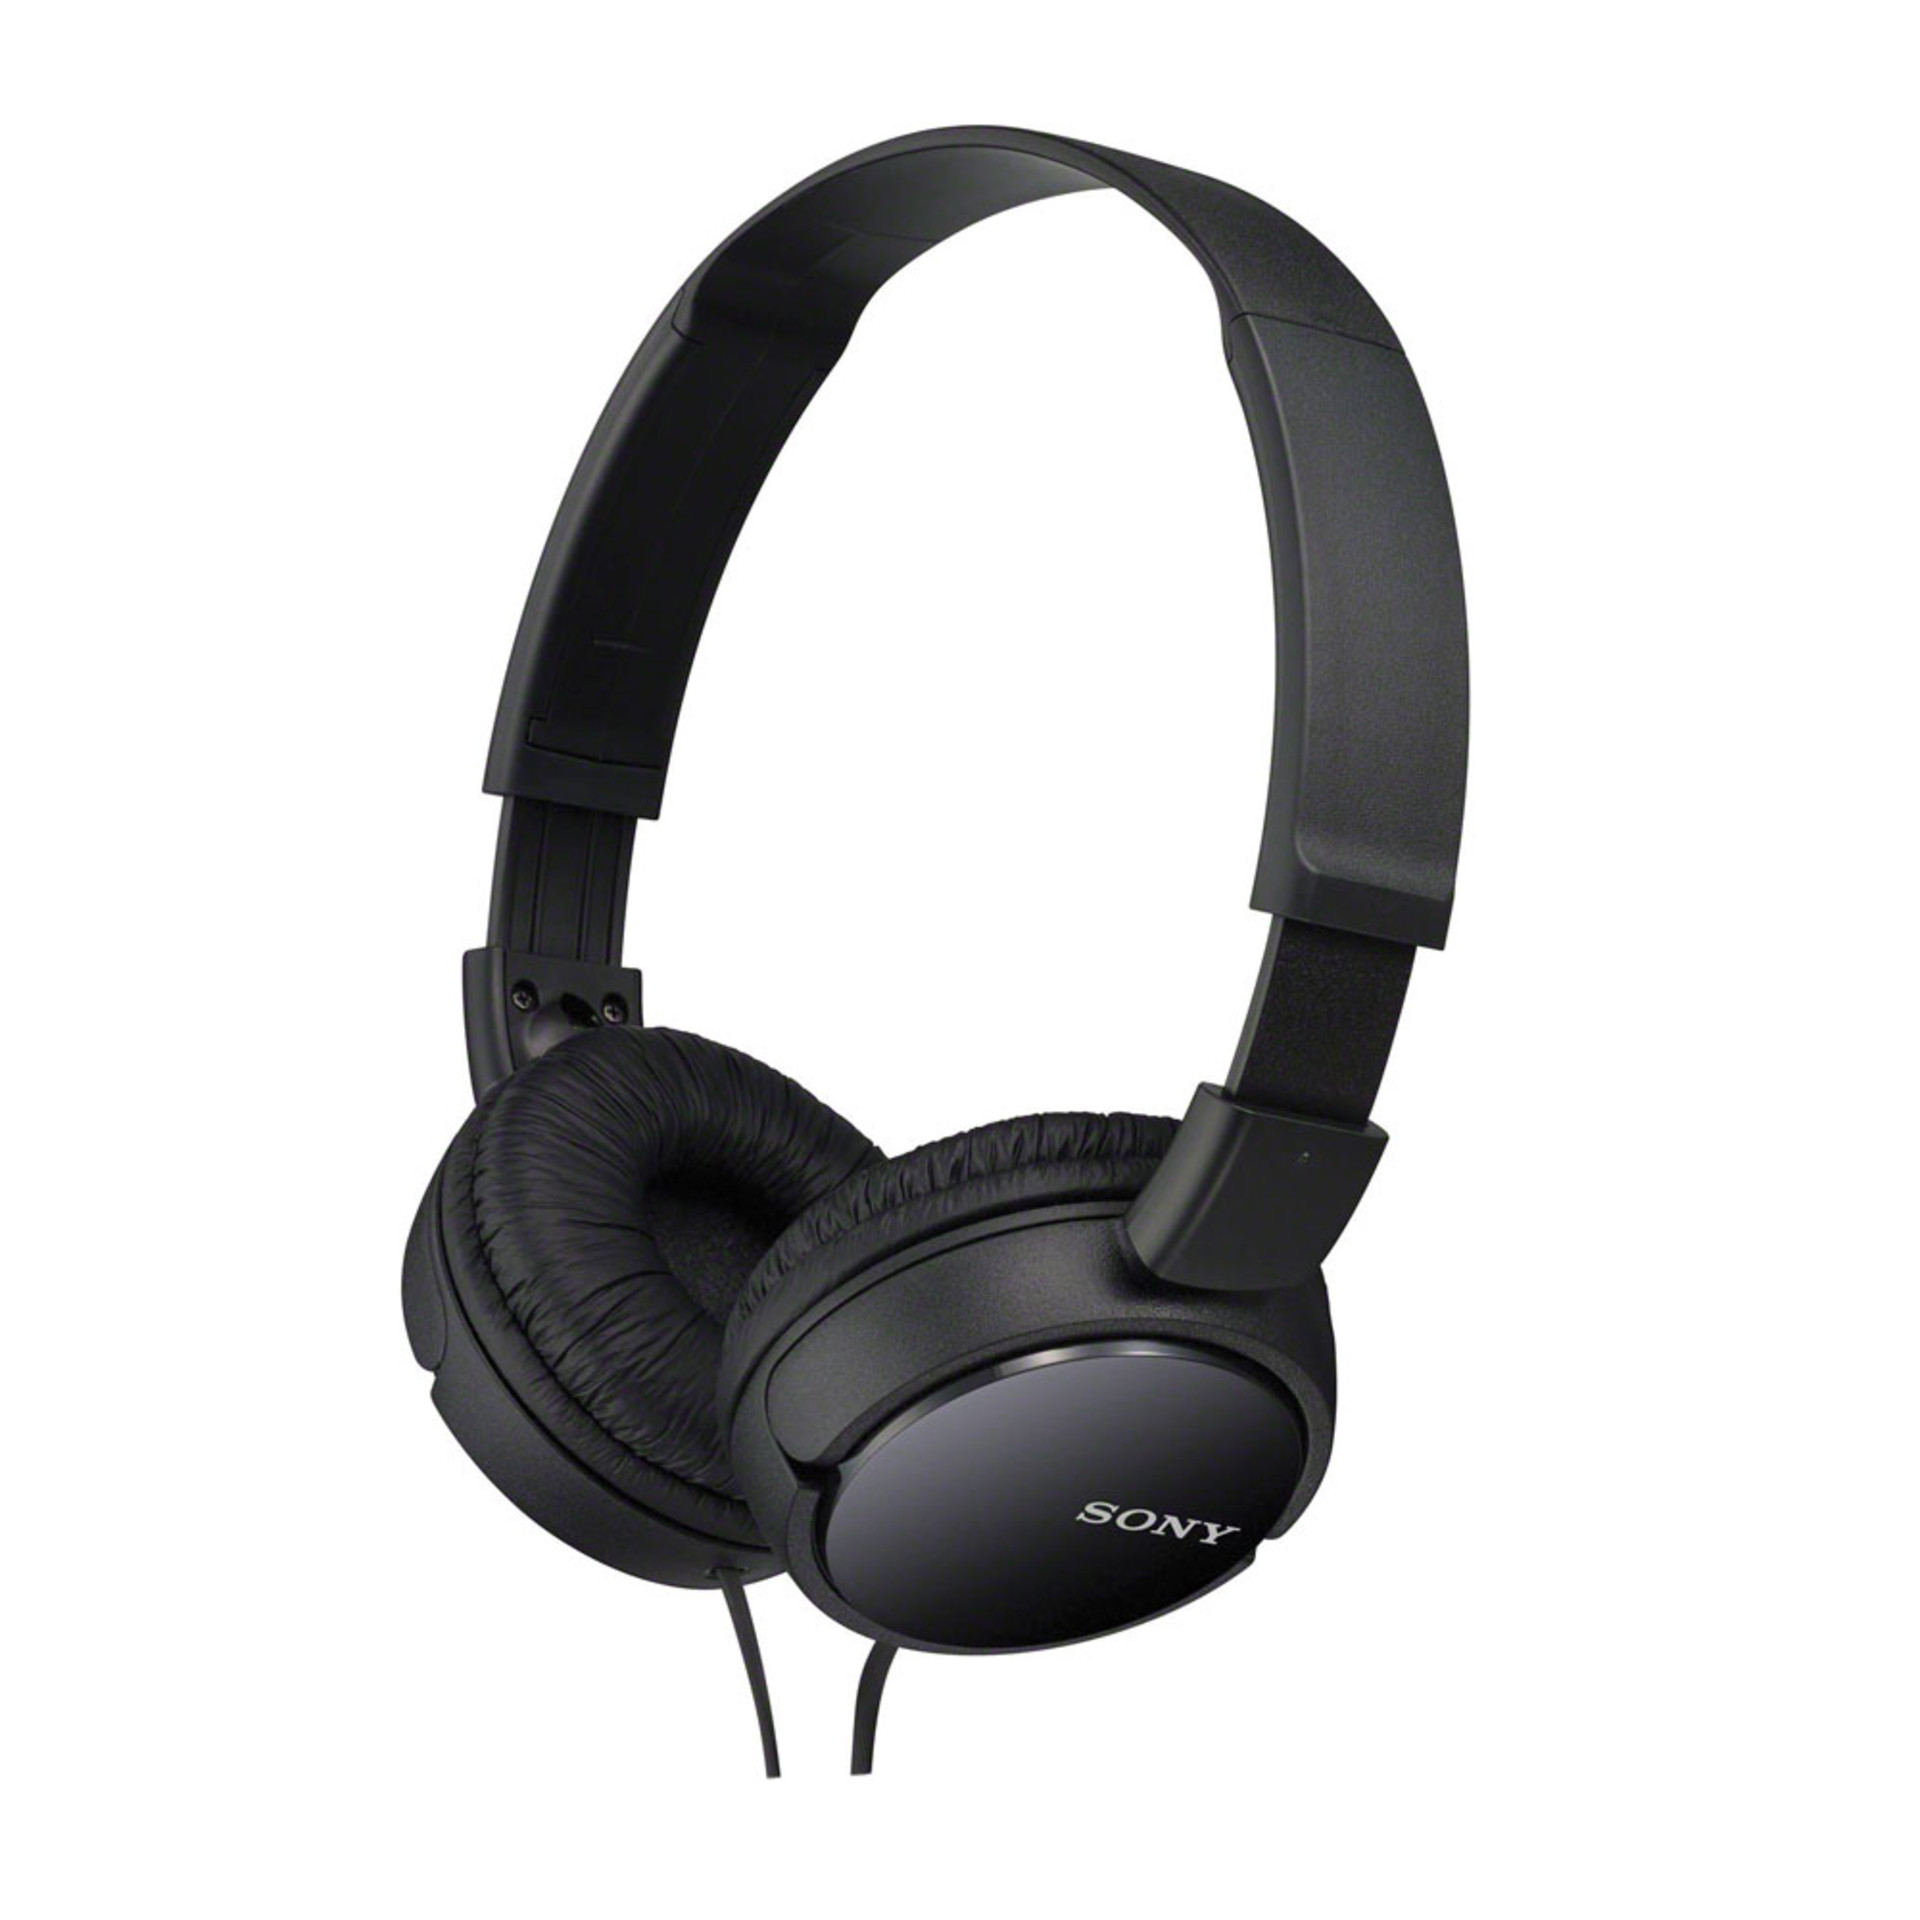 Sony ZX110 Headphones Black